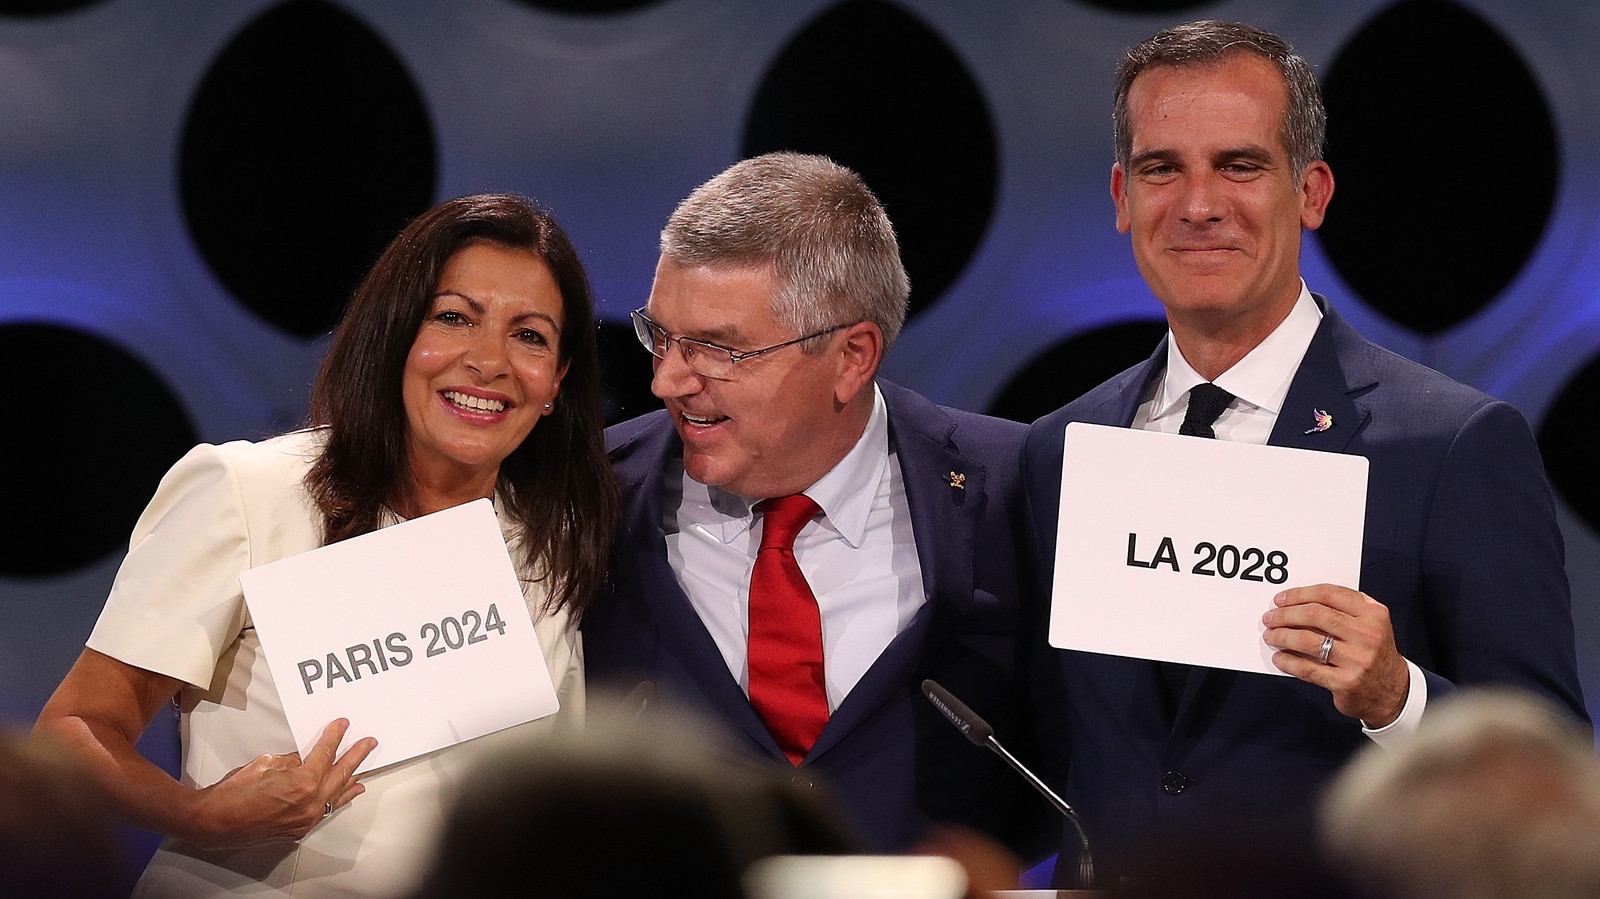 OC President Thomas Bach, centre, described the decision to award the 2024 Olympic Games to Paris and 2028 to Los Angeles simultaneously as a